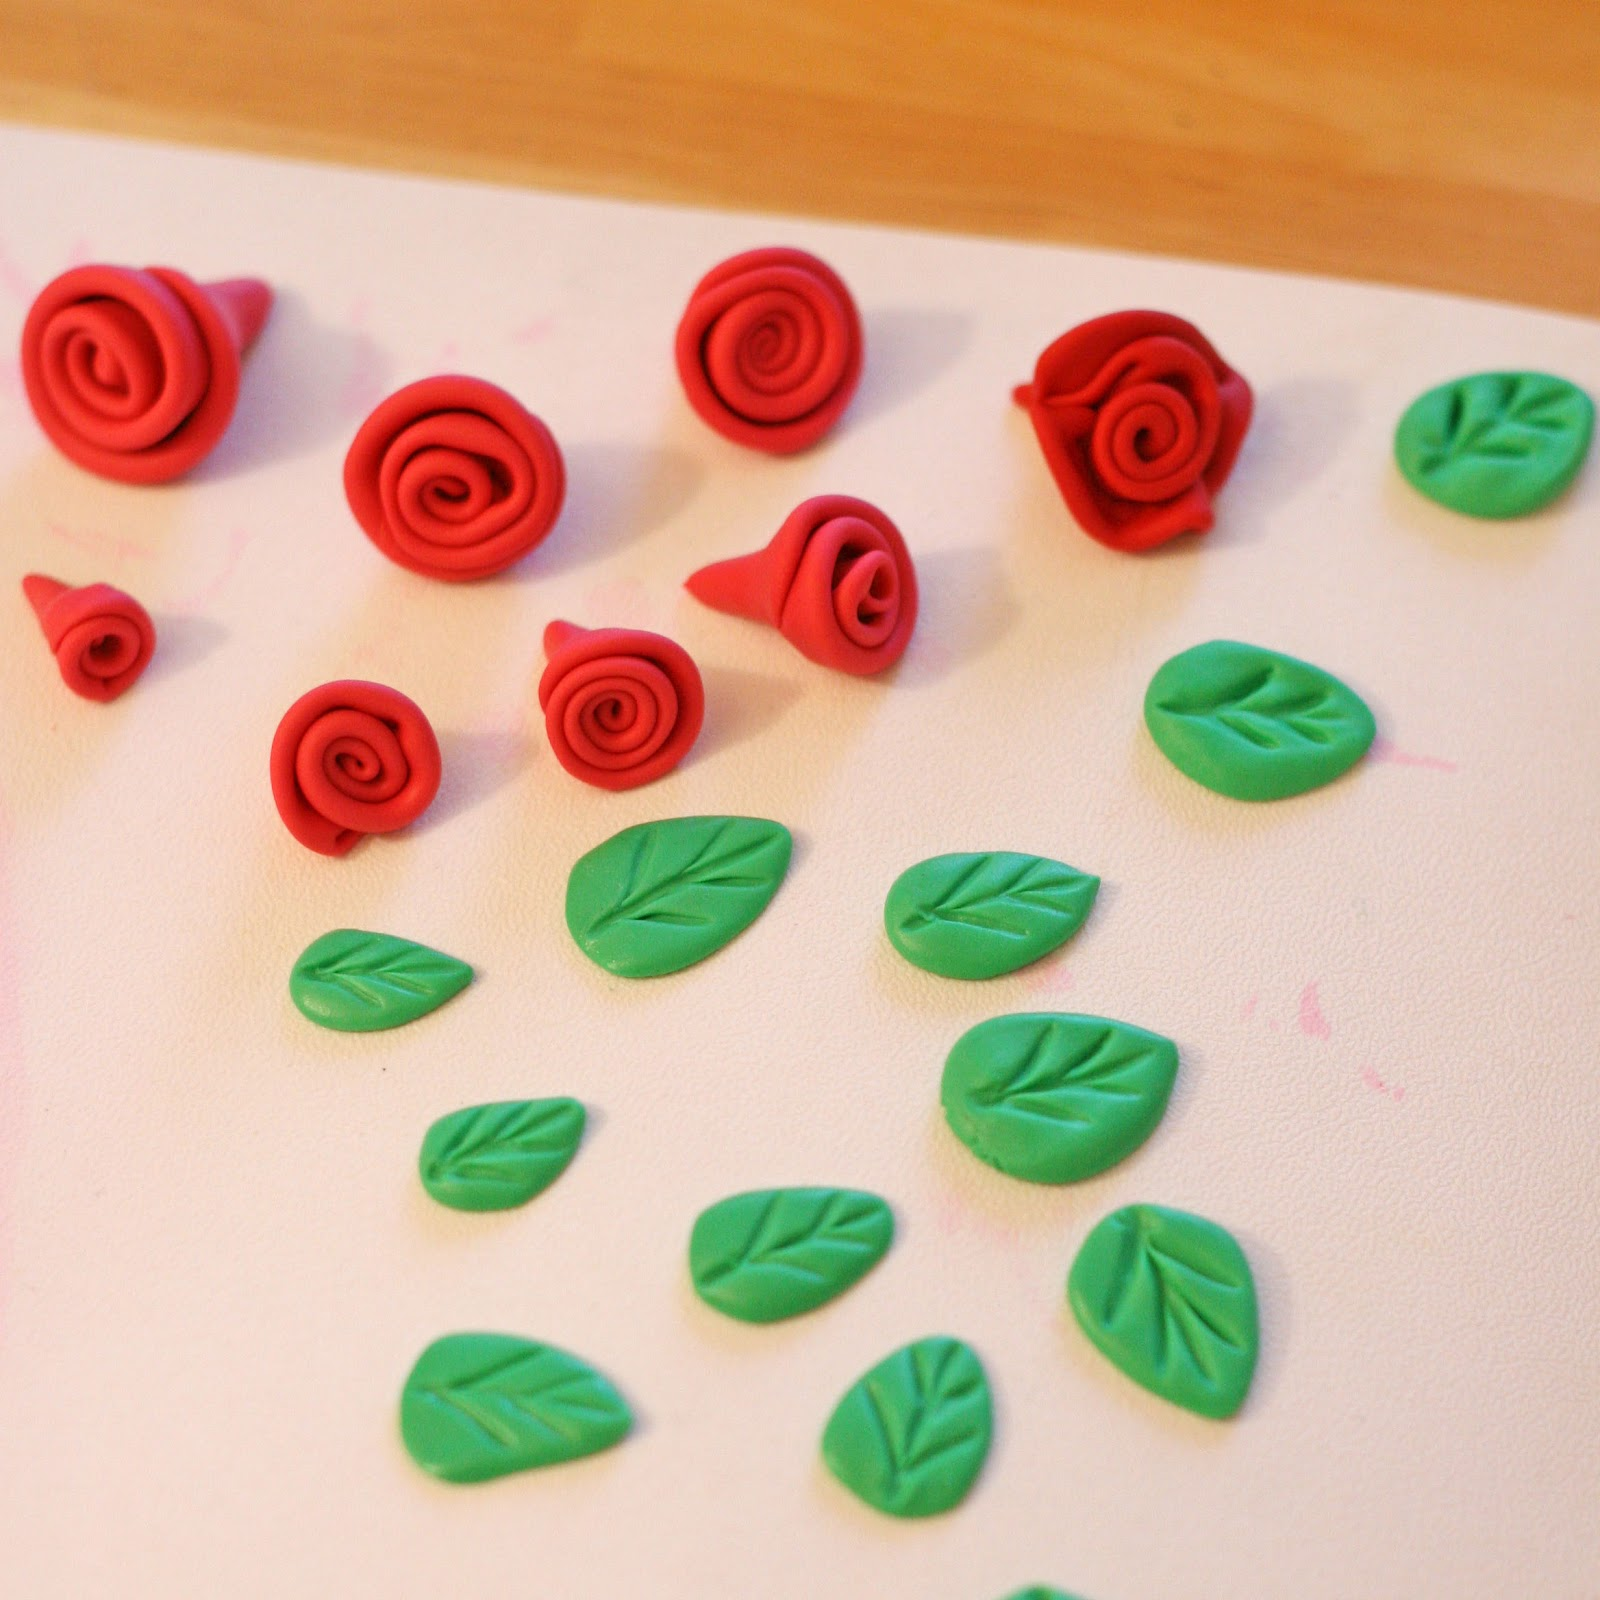 How to make roses from leaves 49